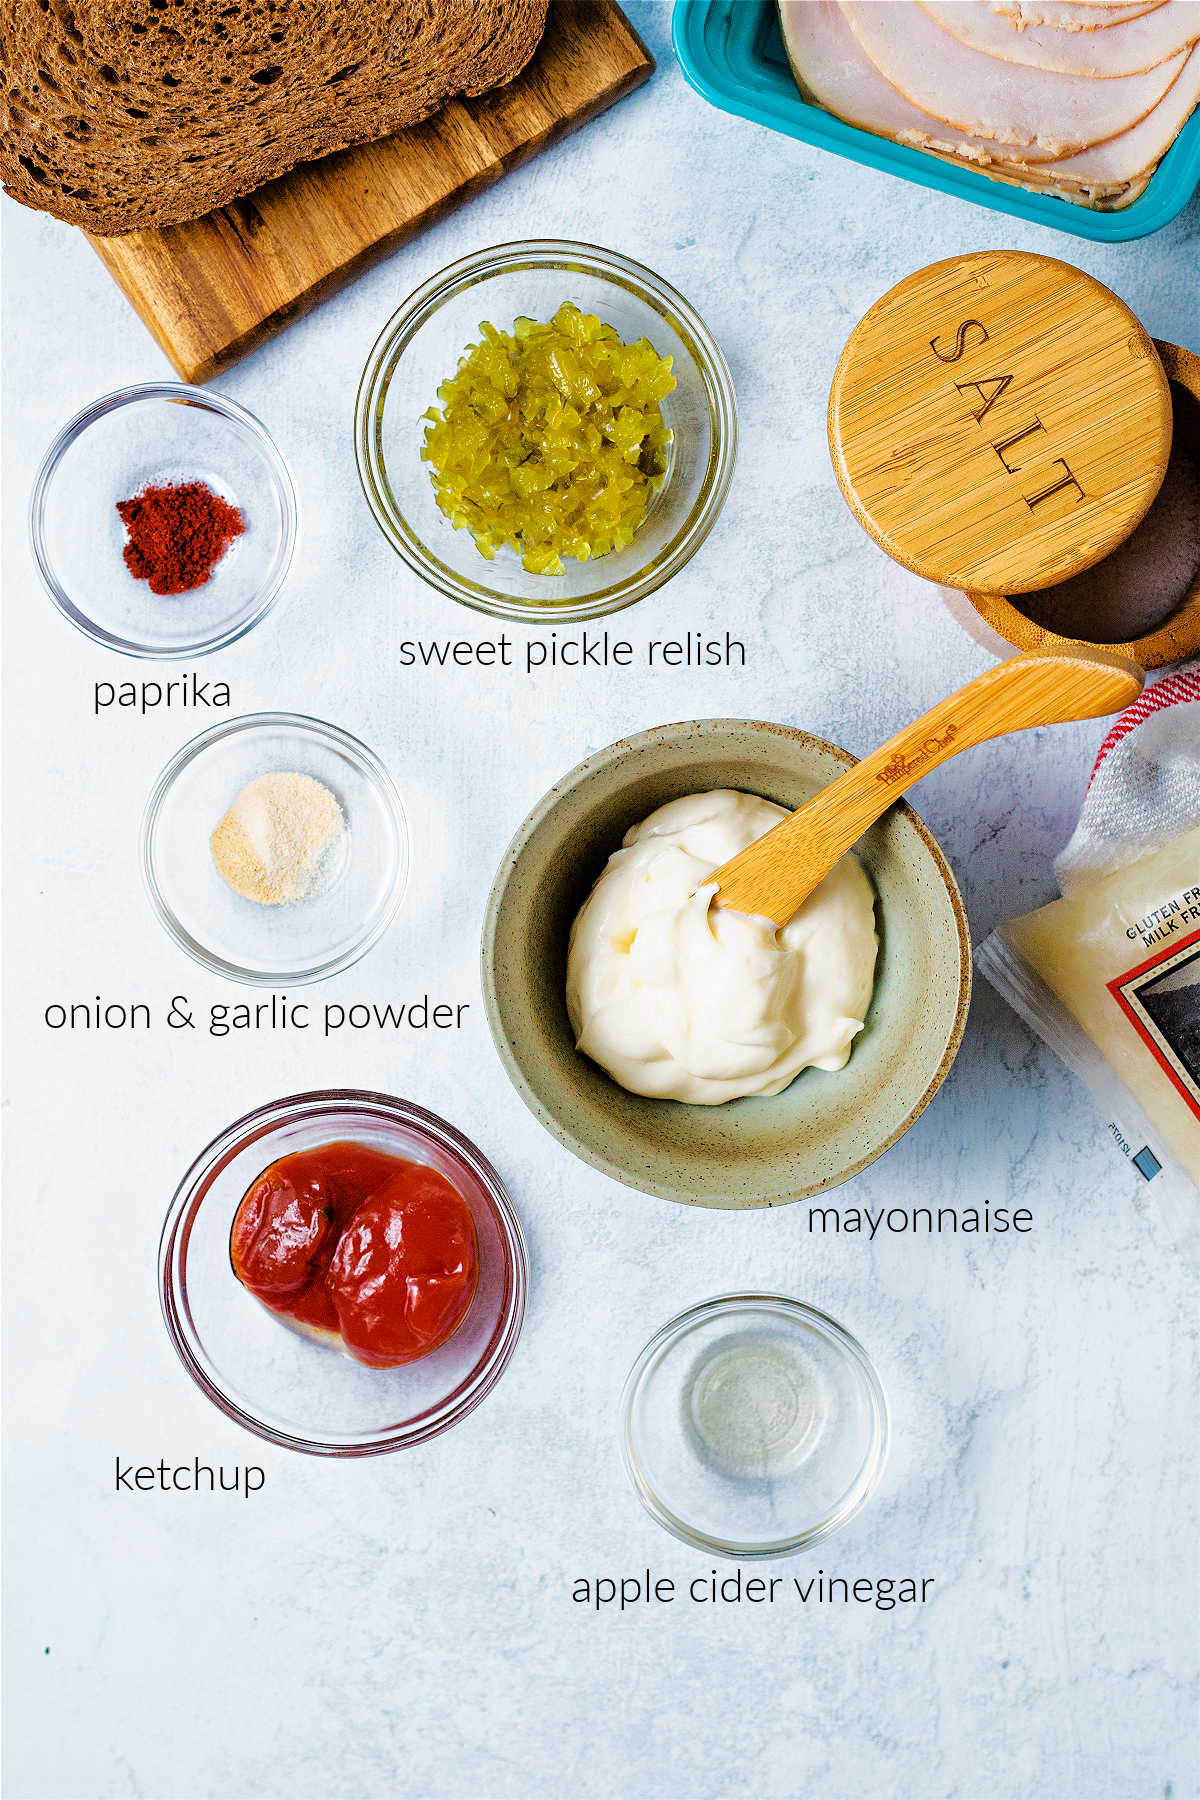 ingredients for thousand island dressing on a kitchen counter: mayonnaise, ketchup, pickle relish, cider vinegar, and seasonings.